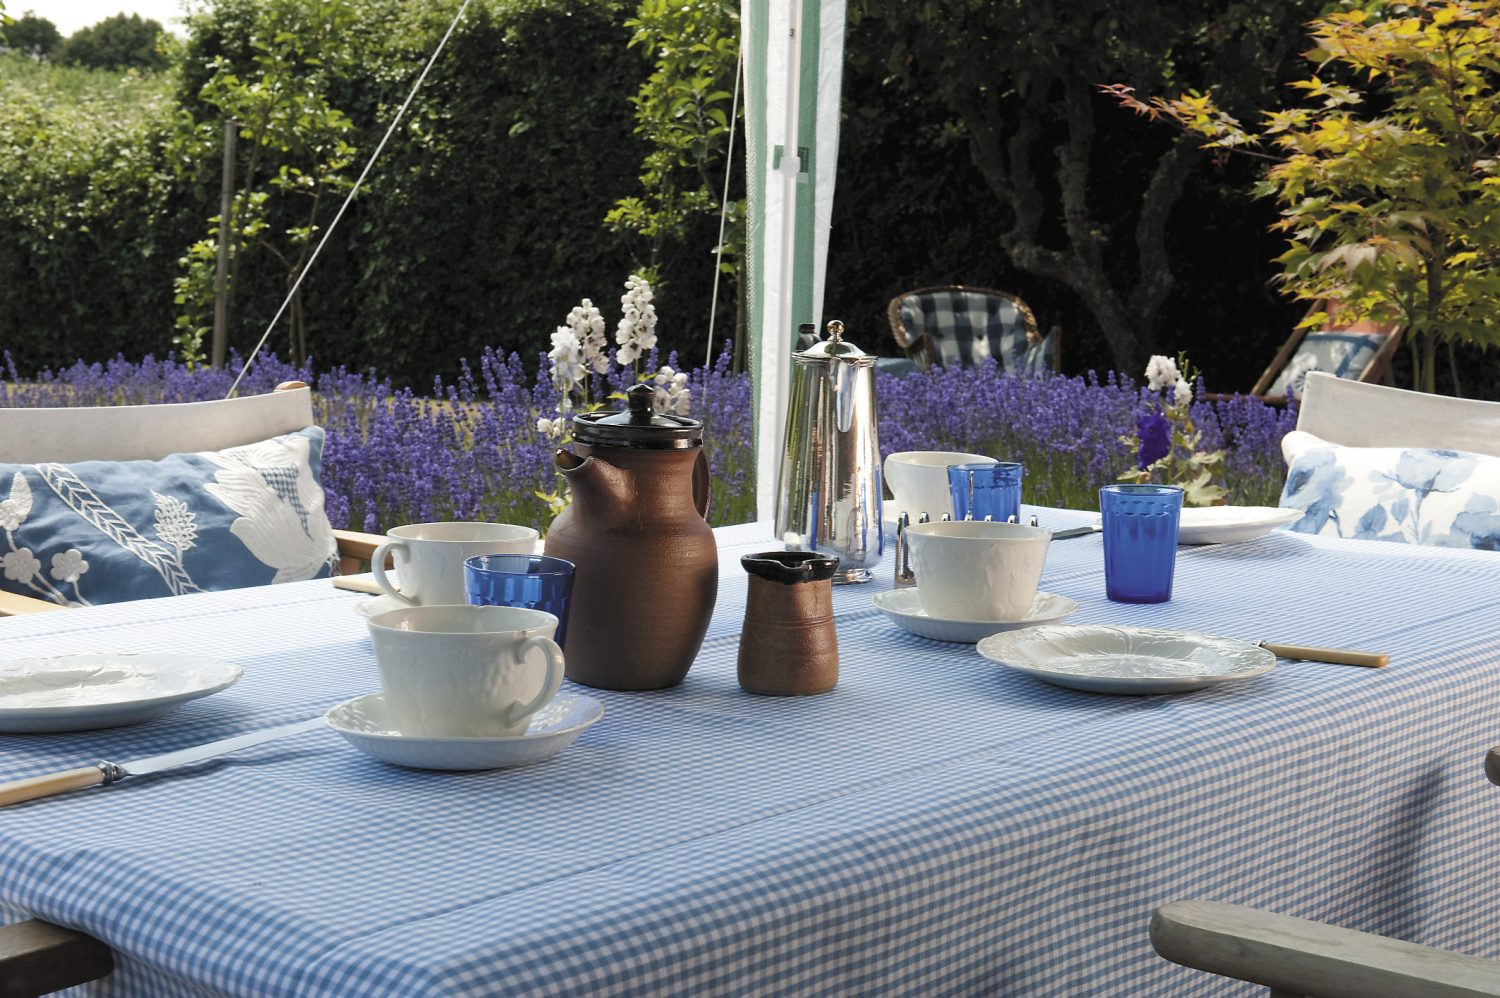 Sarnia and Jeannie's garden makes for a delightful setting for dining al fresco